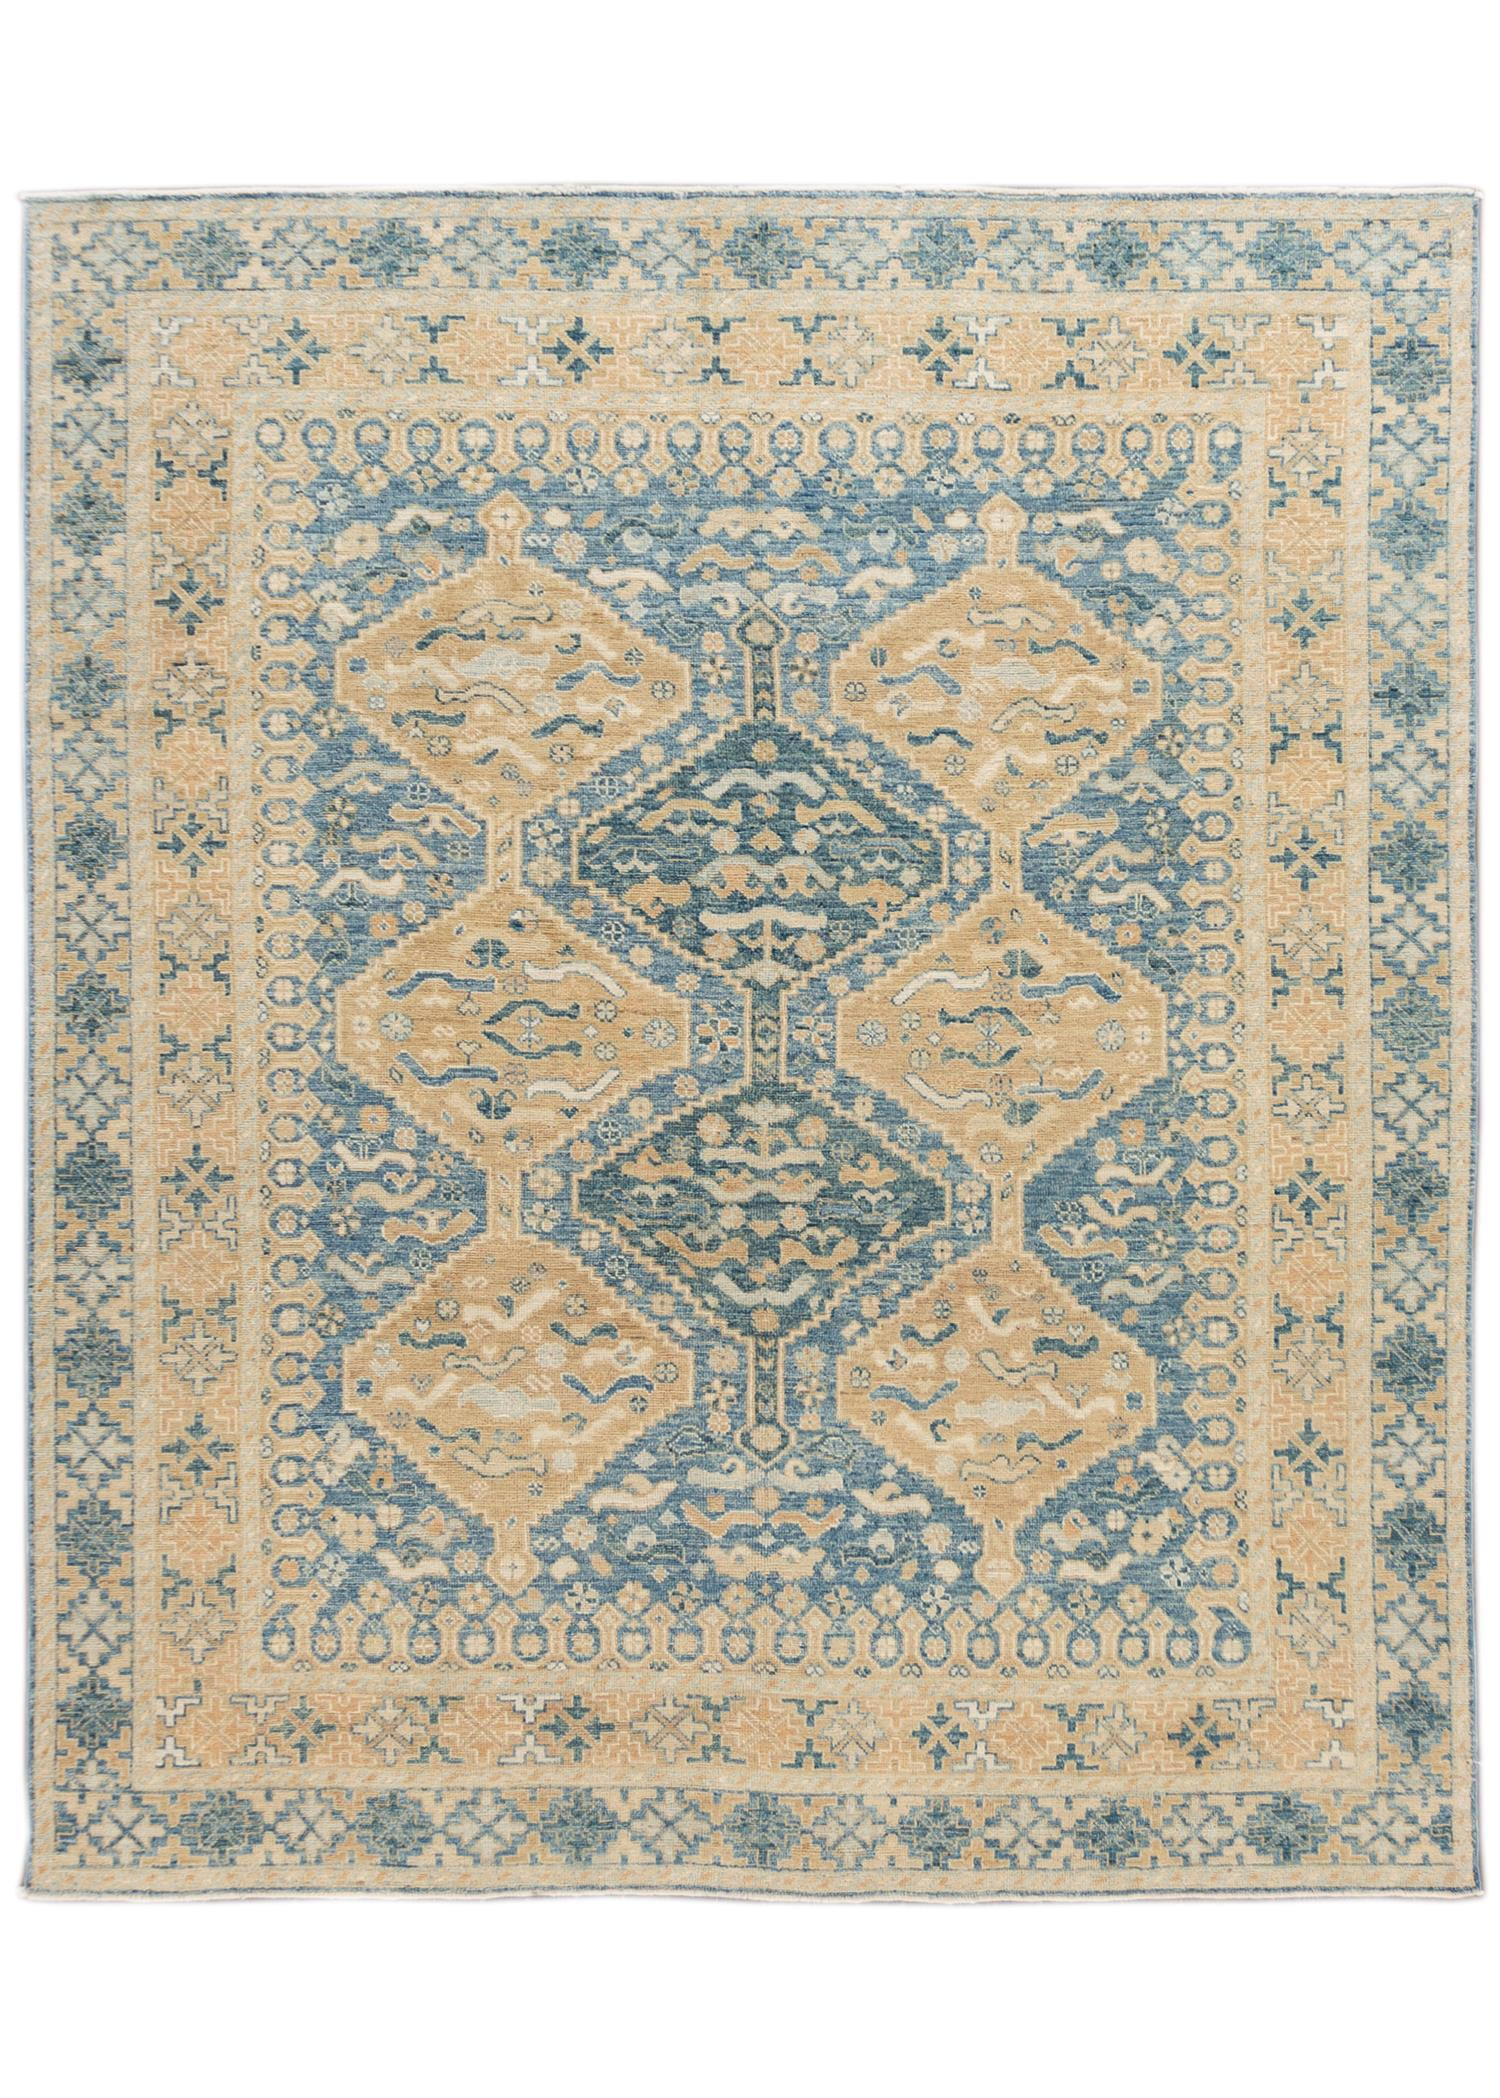 Contemporary Blue and Tan Oushak-Style Wool Area Rug 8' x 10'